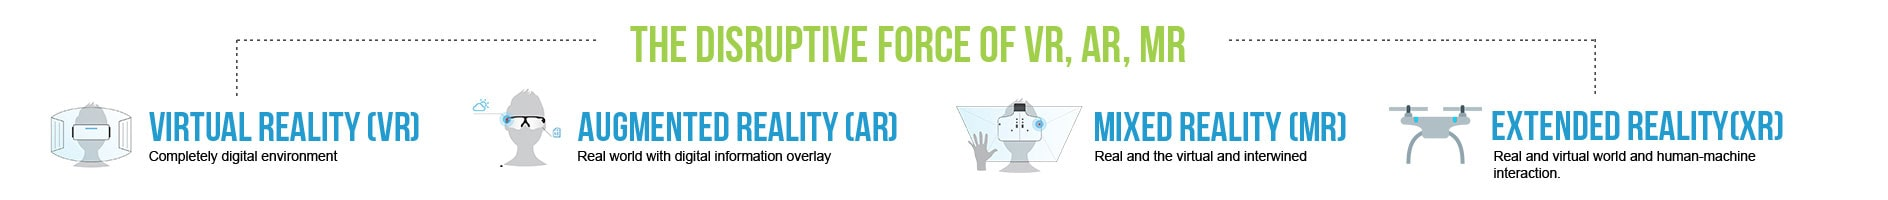 The Disruptive Force of VR, AR, MR